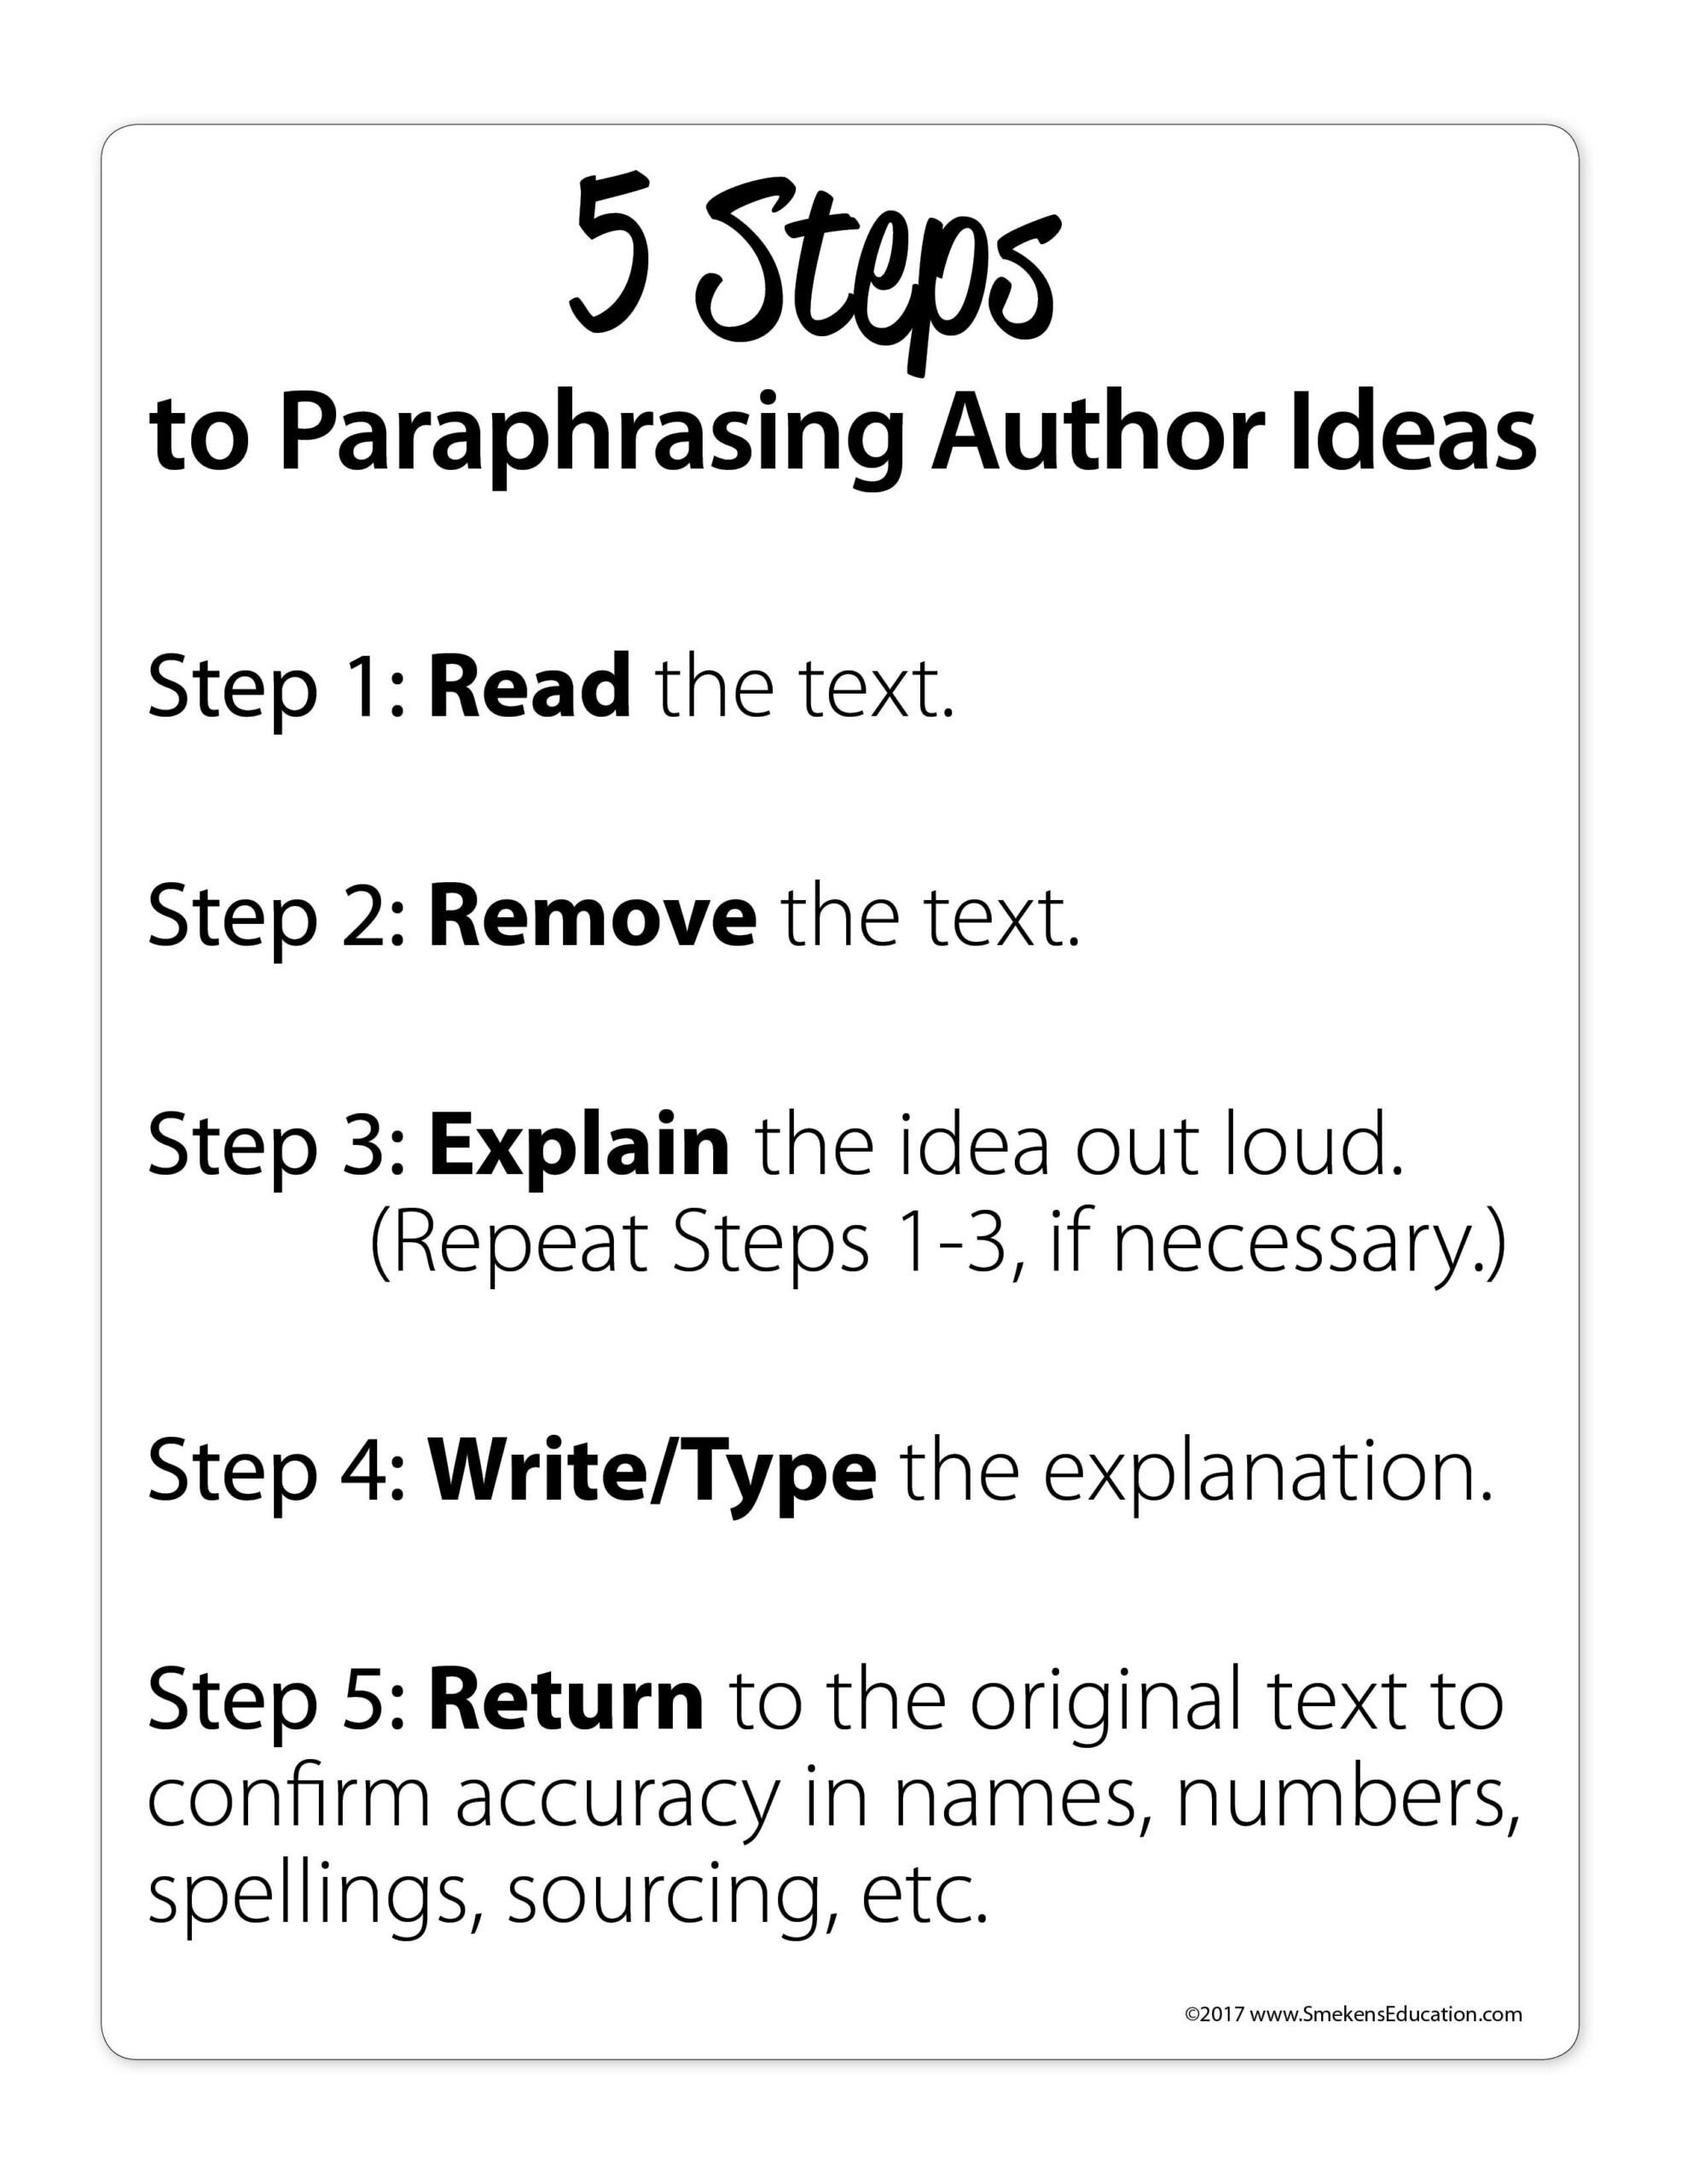 Paraphrase in 5 Steps